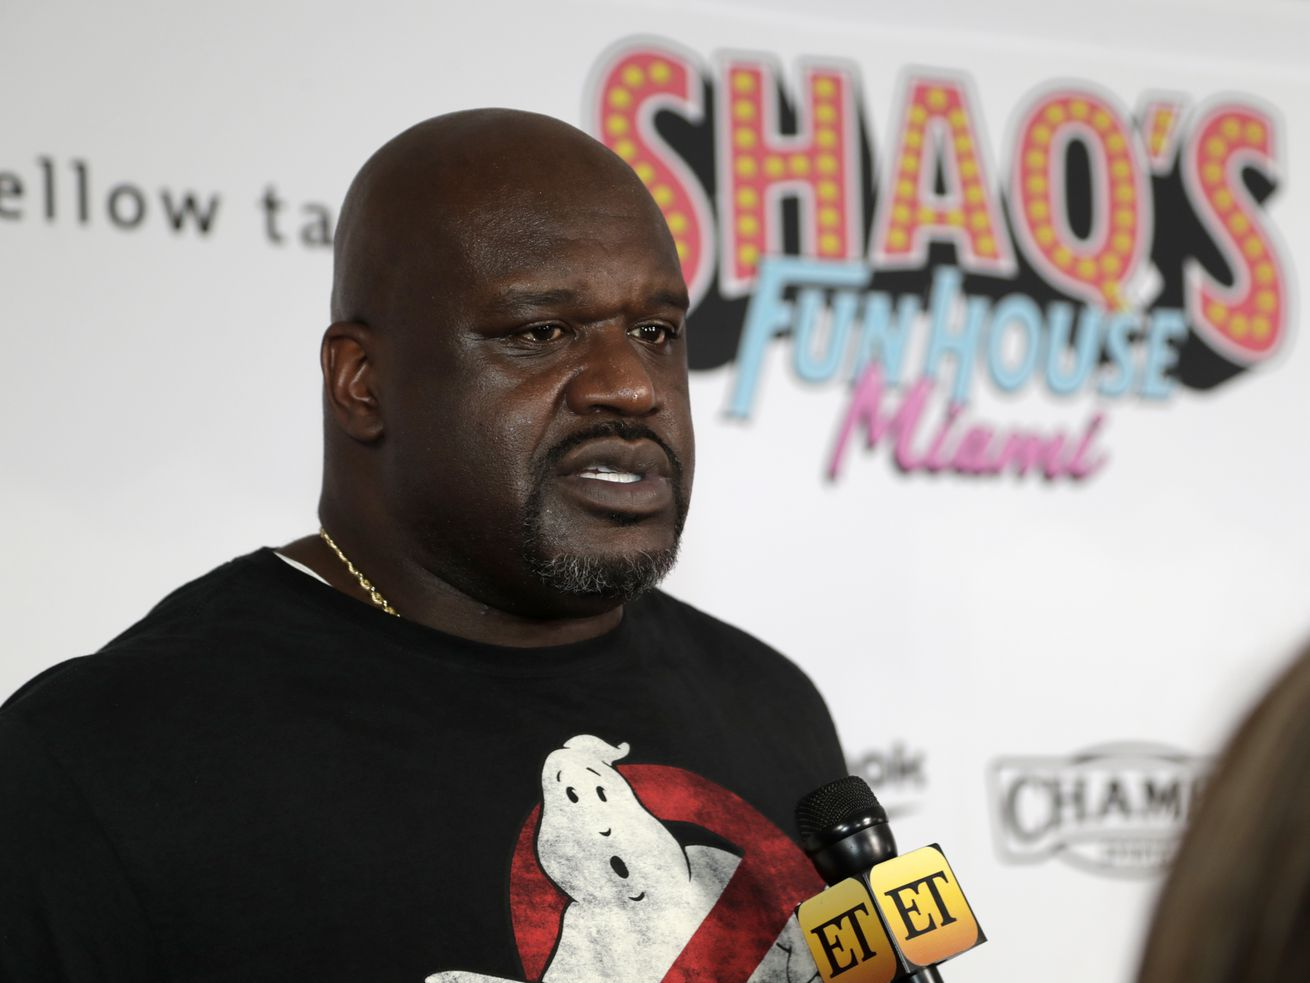 In this 2020, file photo, former NBA player Shaquille O' Neal is interviewed on the red carpet for Shaq's Fun House in Miami.